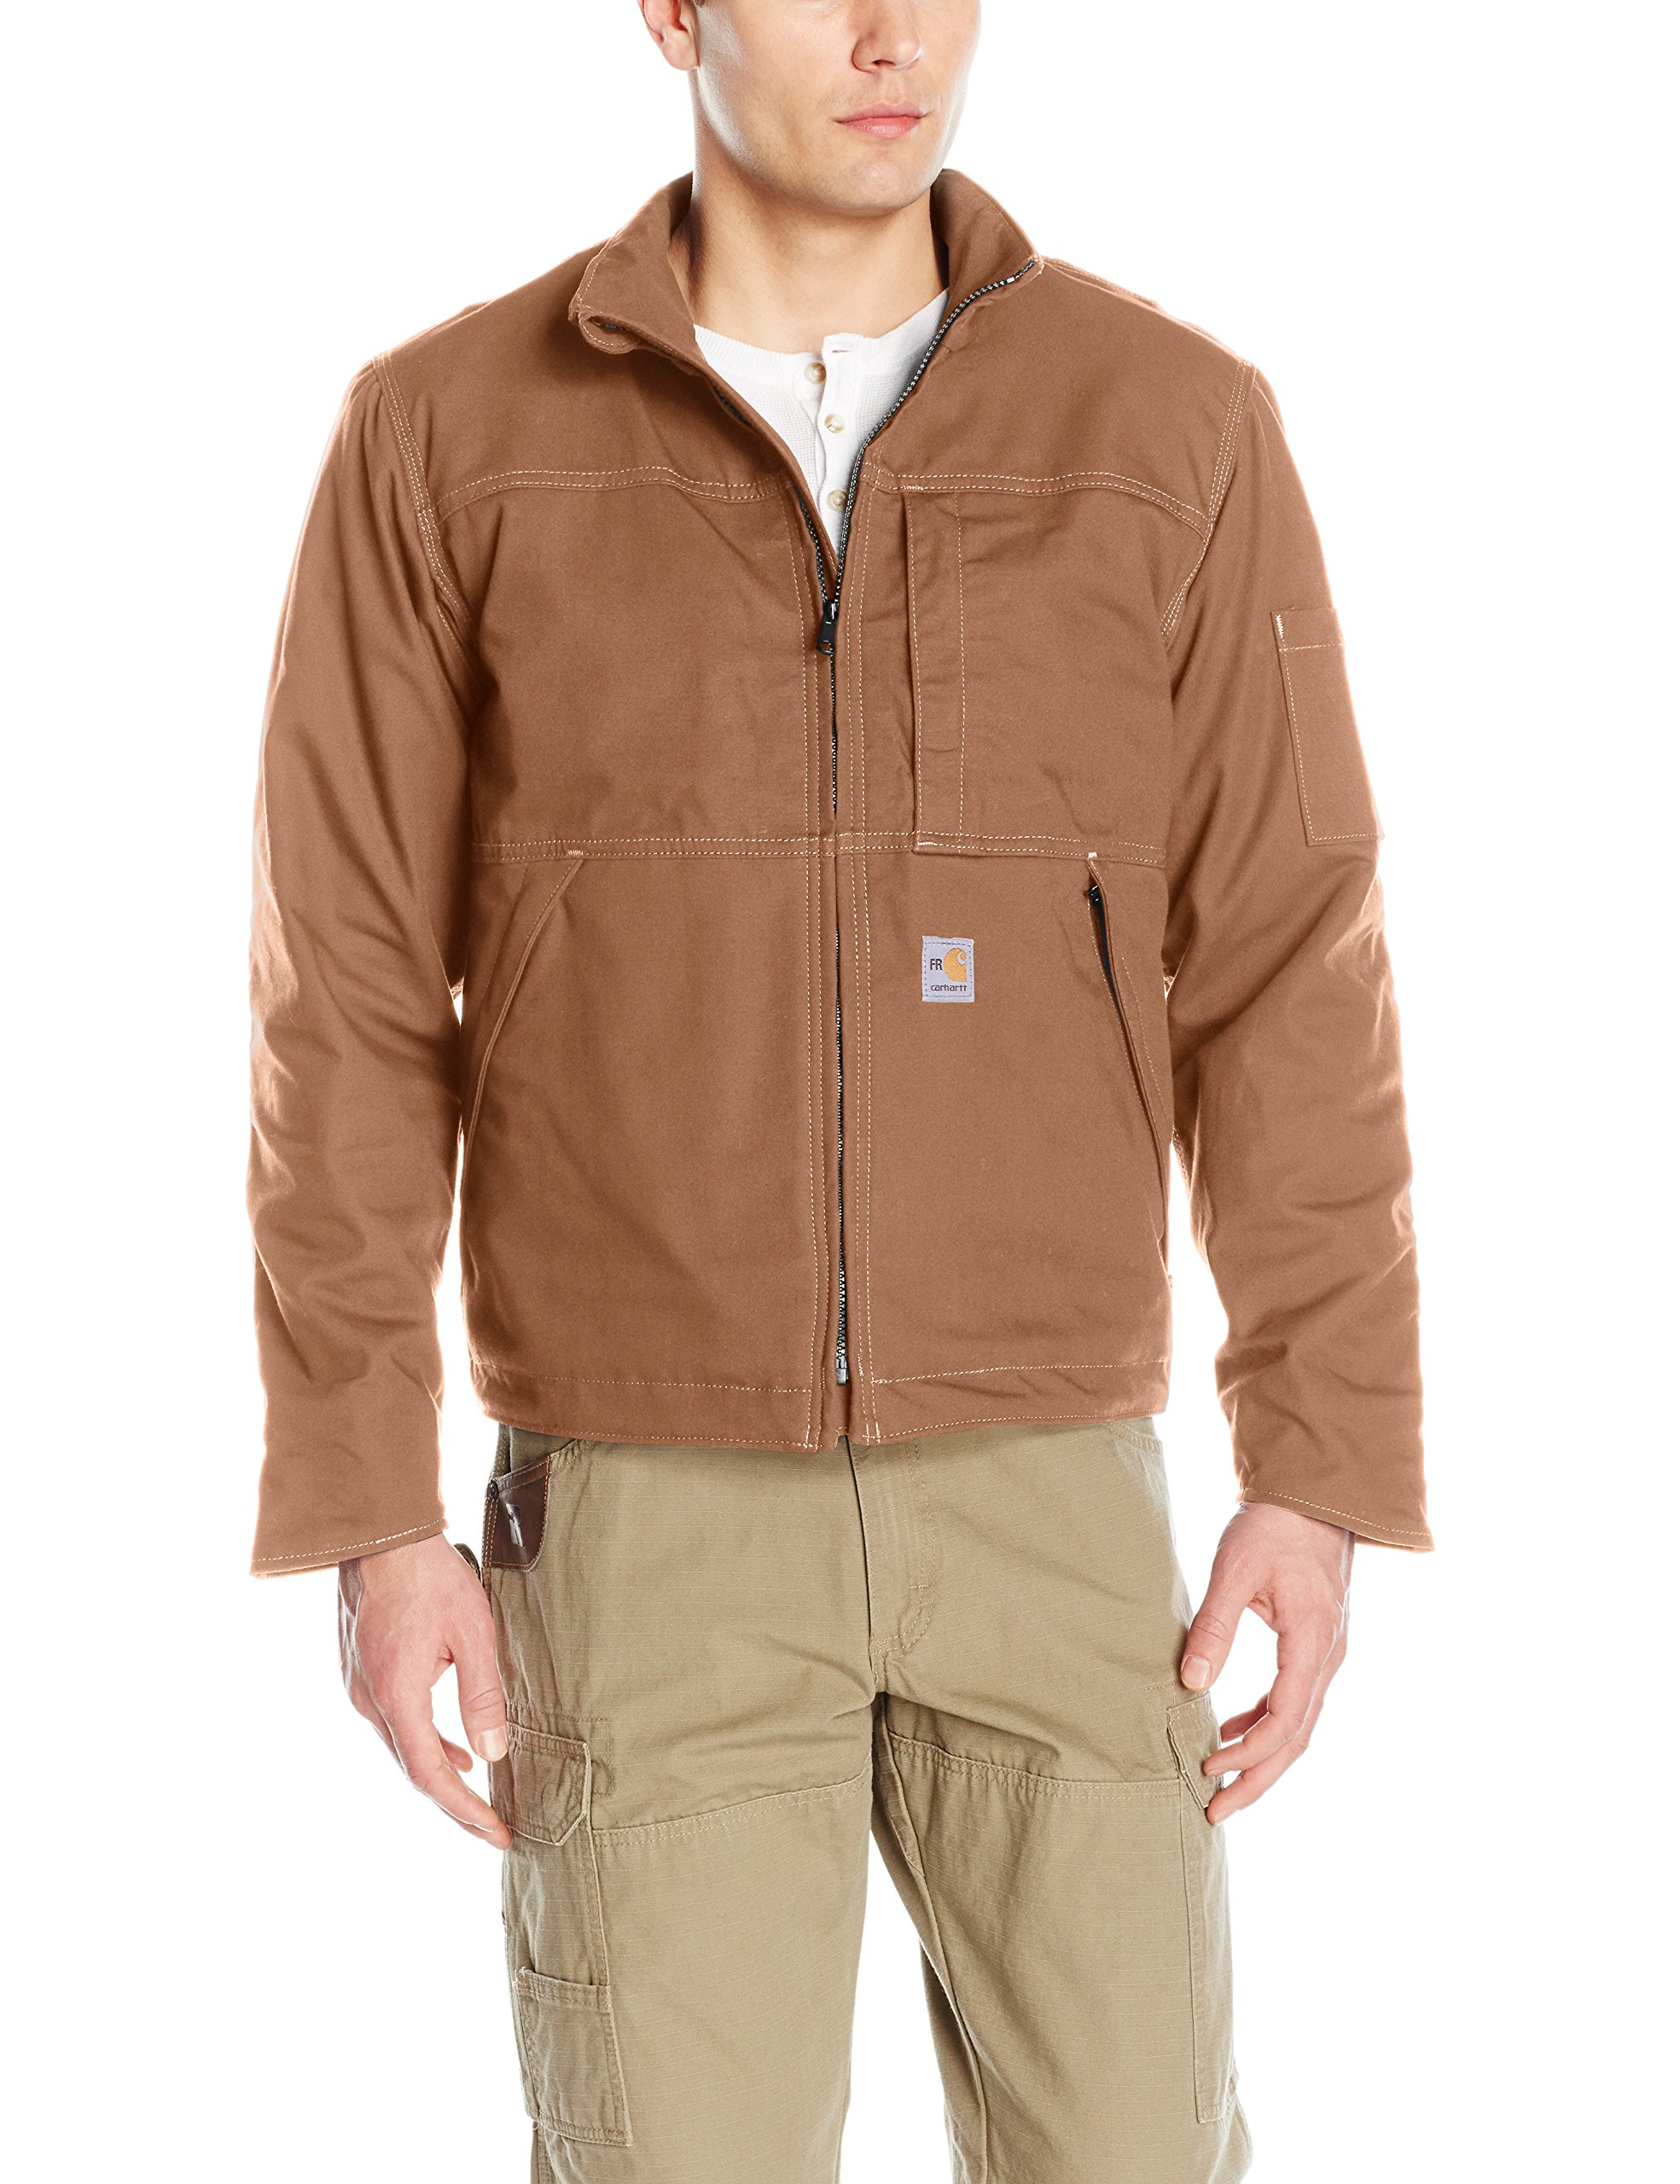 Carhartt Men's Flame Resistant Full Swing Quick Duck Jacket, Brown, Medium by Carhartt